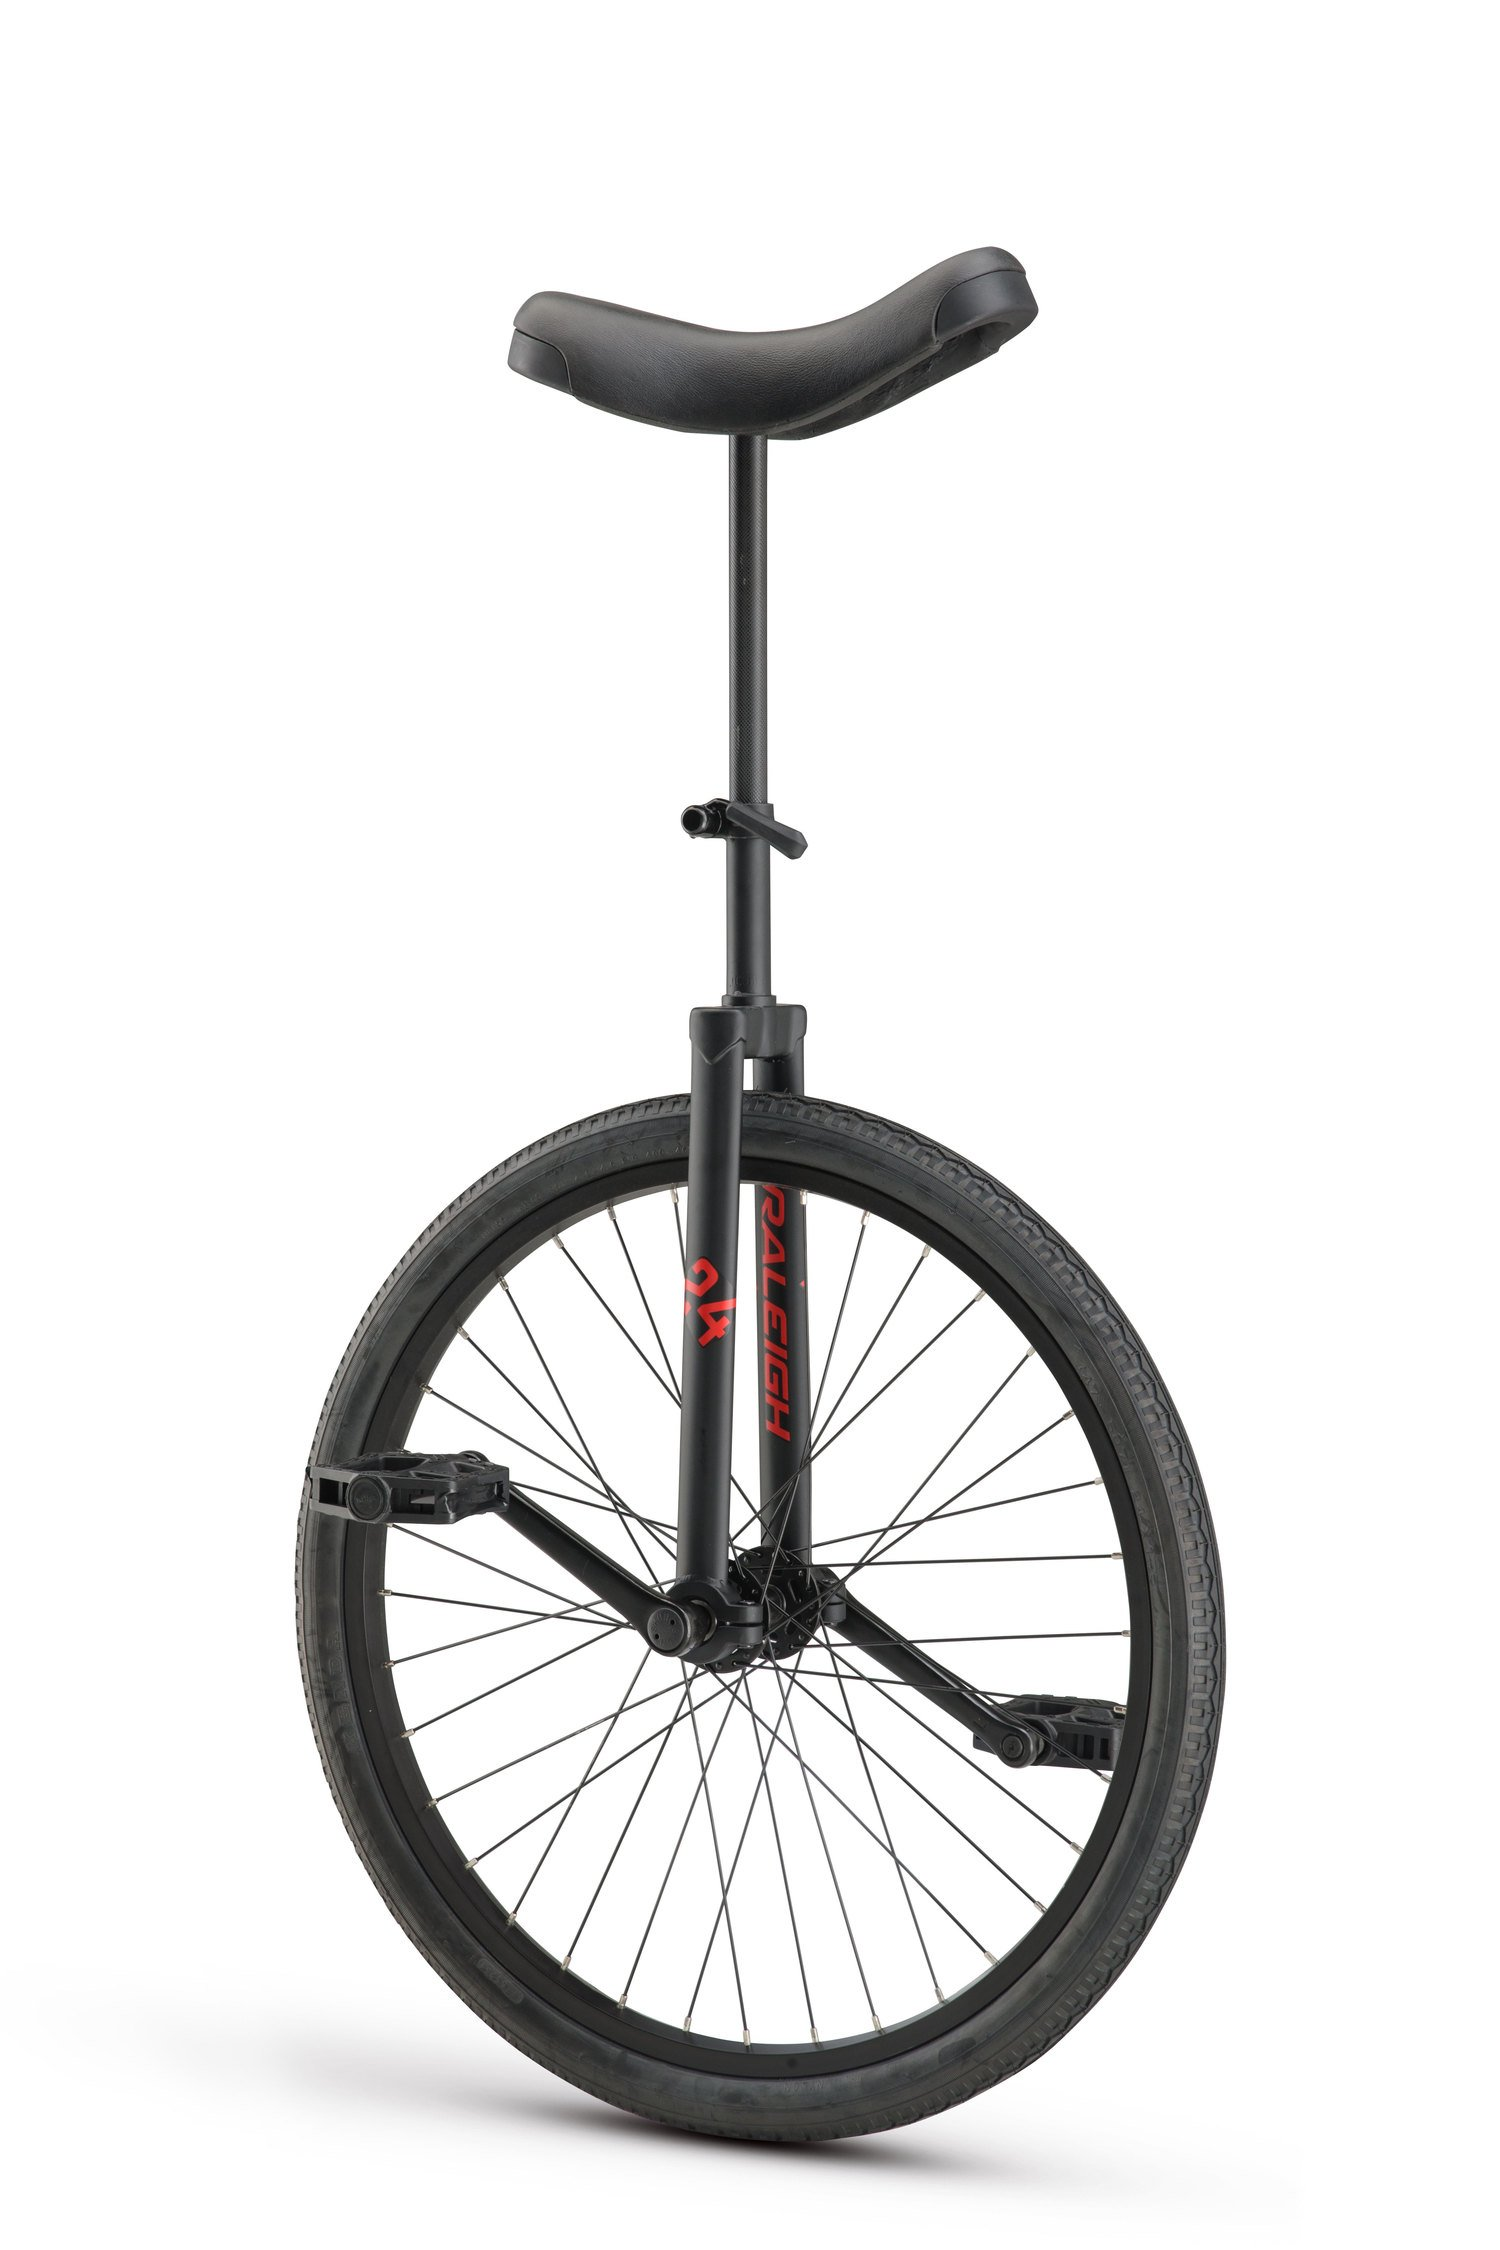 RALEIGH Unistar 24, 24inch Wheel Unicycle, Black by RALEIGH